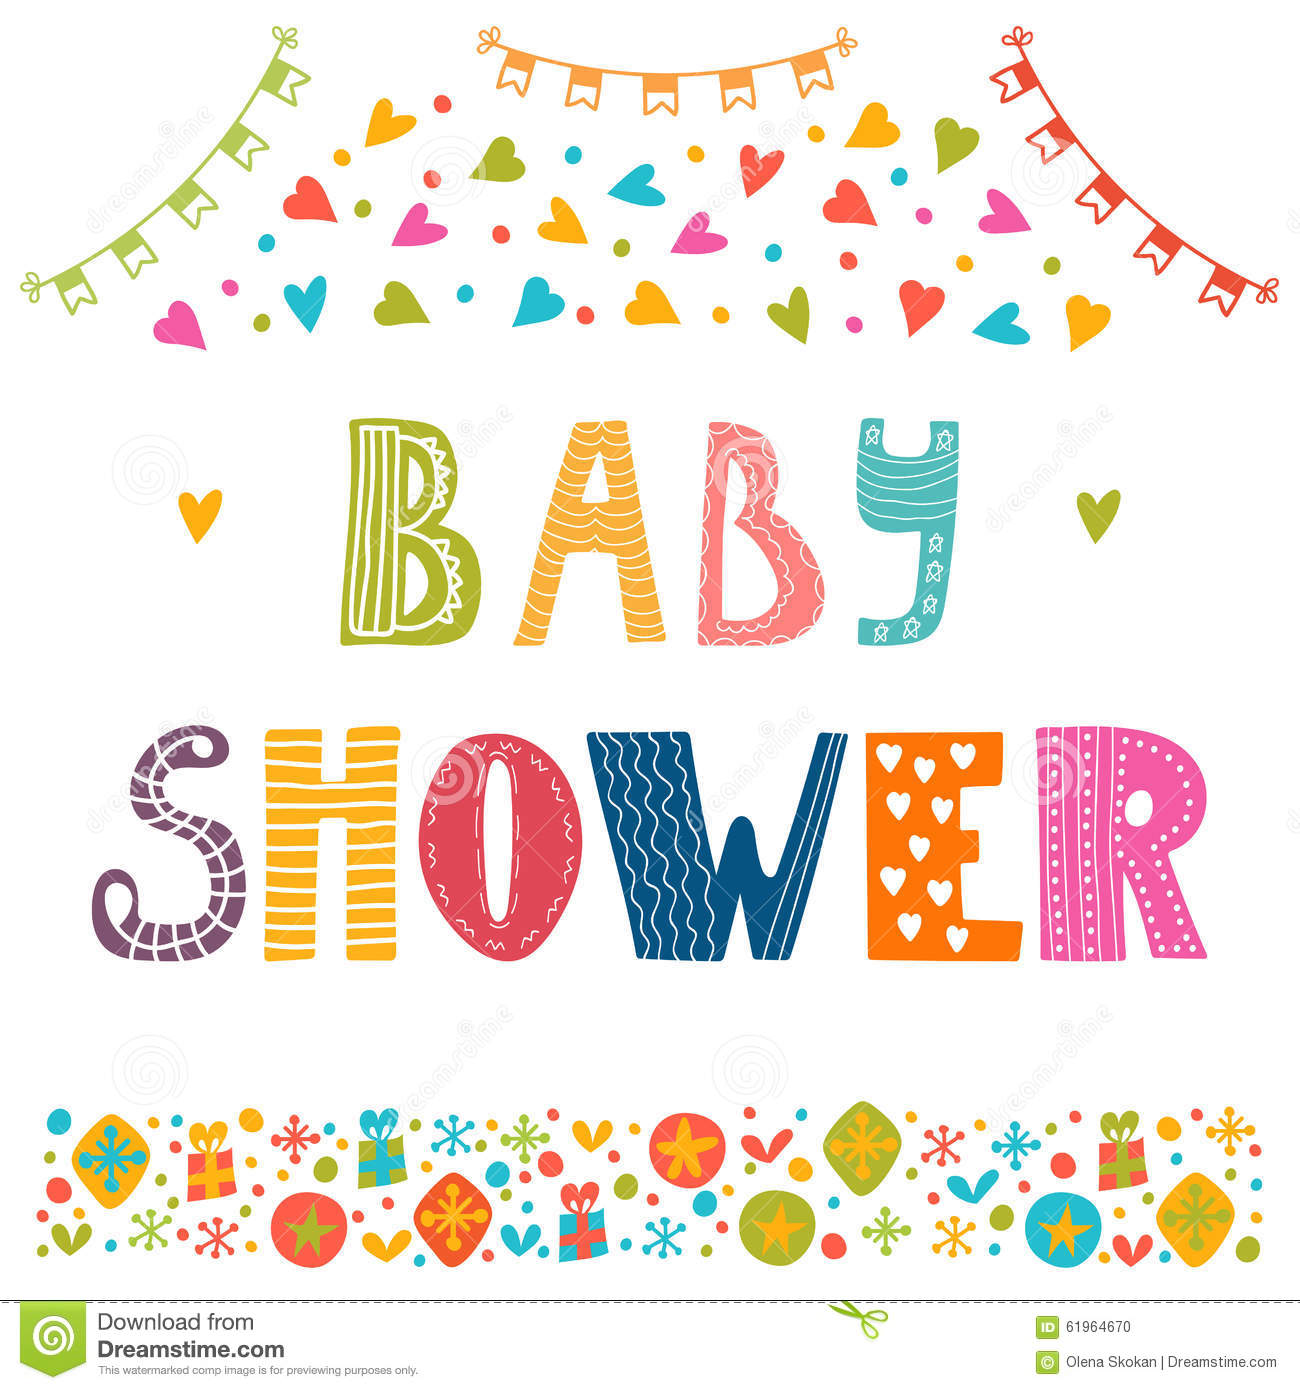 Full Size of Baby Shower:sturdy Baby Shower Invitation Template Image Concepts Baby Shower Invitation Template Cute Postcard Stock Vector Download Baby Shower Invitation Template Cute Postcard Stock Vector Illustration Of Design Celebration